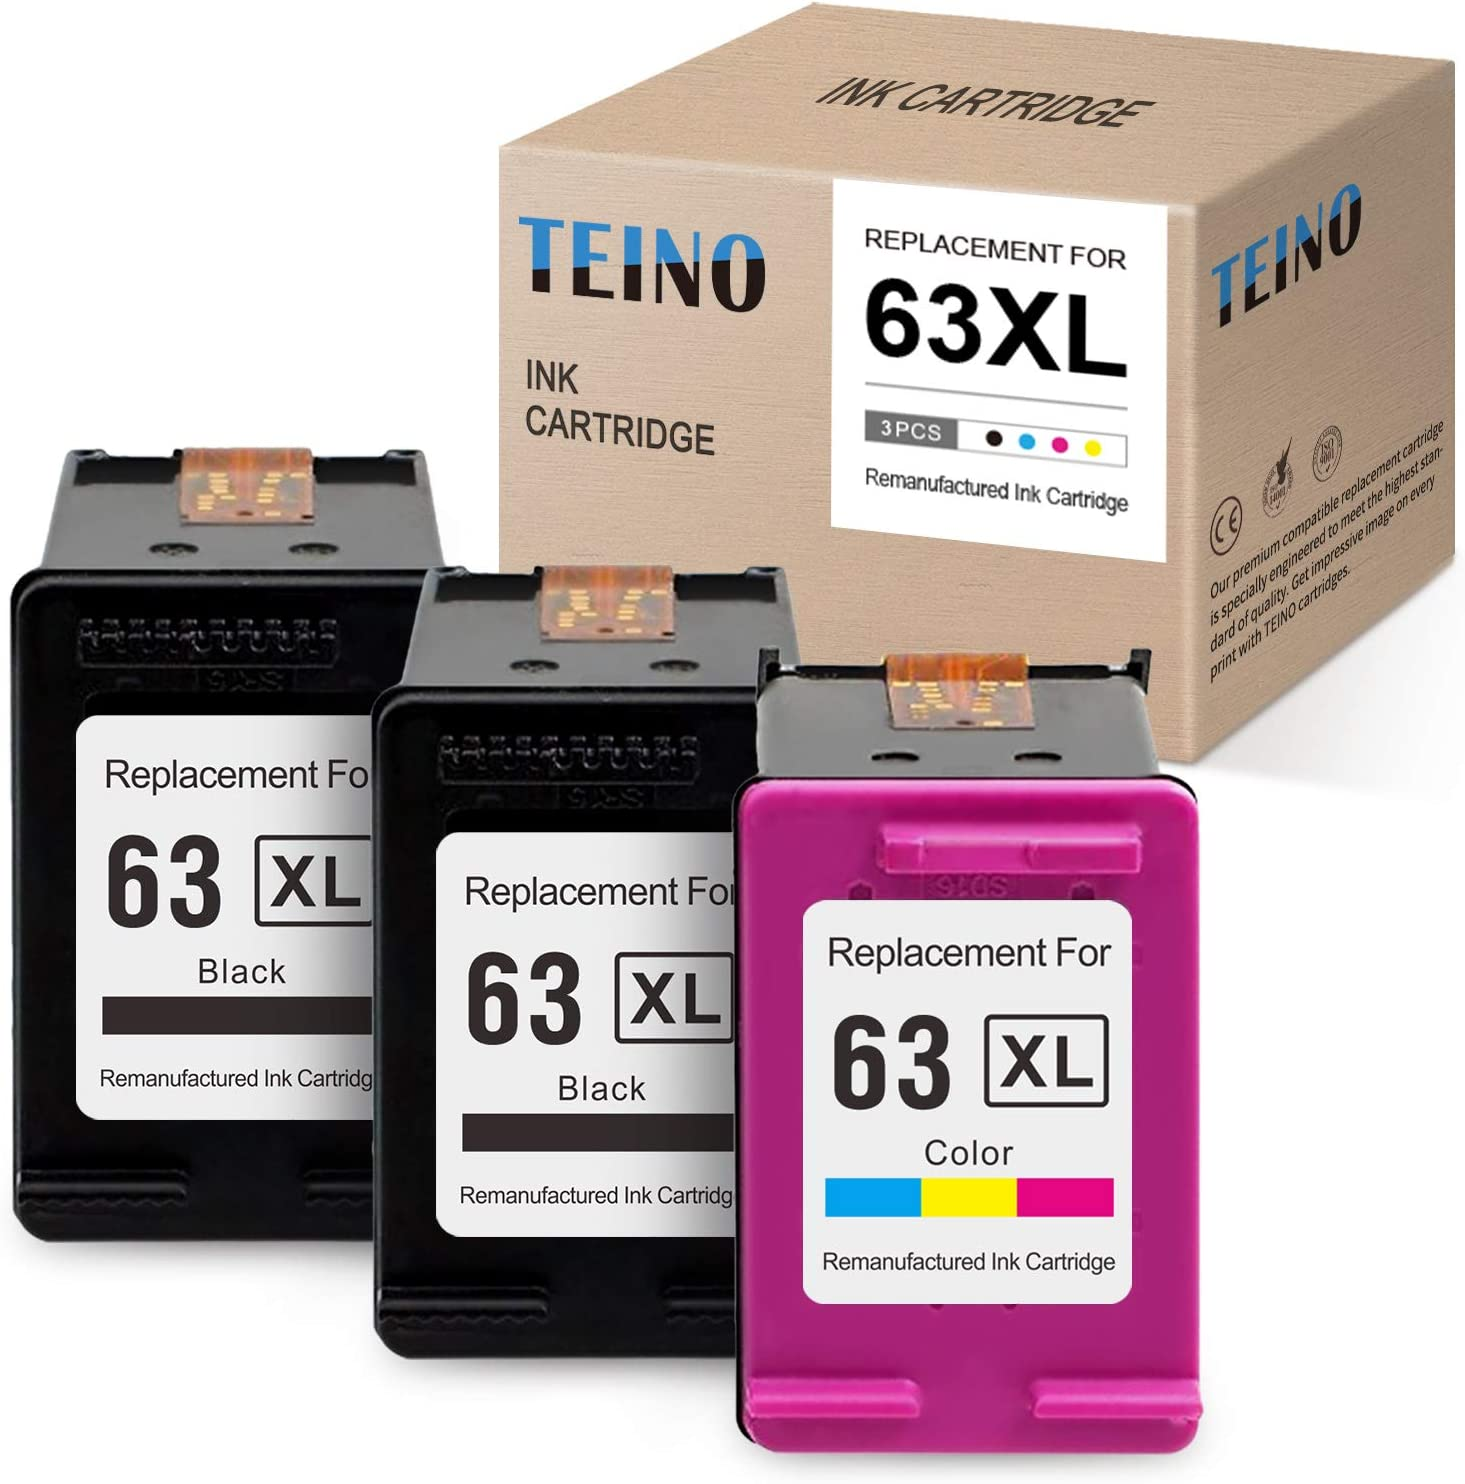 TEINO Remanufactured Ink Cartridge Replacement for HP 63XL 63 XL use with HP ENVY 4520 4512 4510 OfficeJet 4650 5255 3830 5258 5252 3833 4652 DeskJet 1112 2130 3630 3632 (2 Black, 1 Tri-color, 3-Pack)